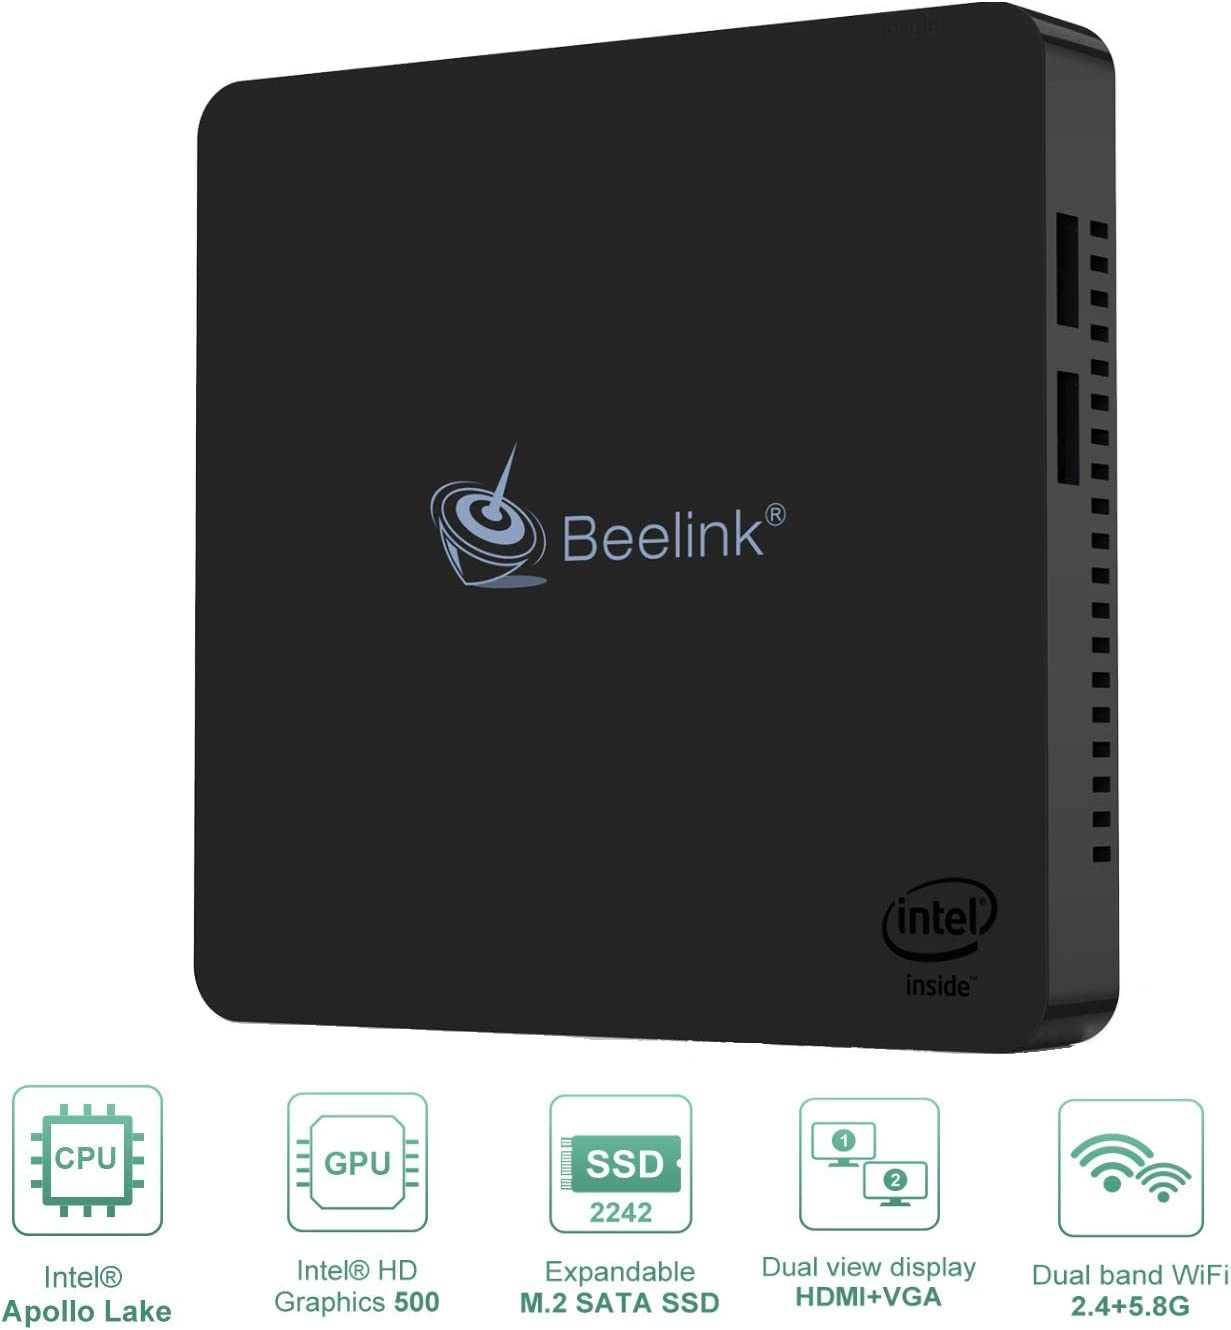 BT4.2 Beelink Mini PC Intel Atom Quad Core CPU(up to 2.24GHz) 4GB RAM//64GB eMMC,Windows 10 BT4 Mini Desktop Computer with HDMI and VGA Port,1000M LAN 4K@30Hz HD,Support Auto Power On